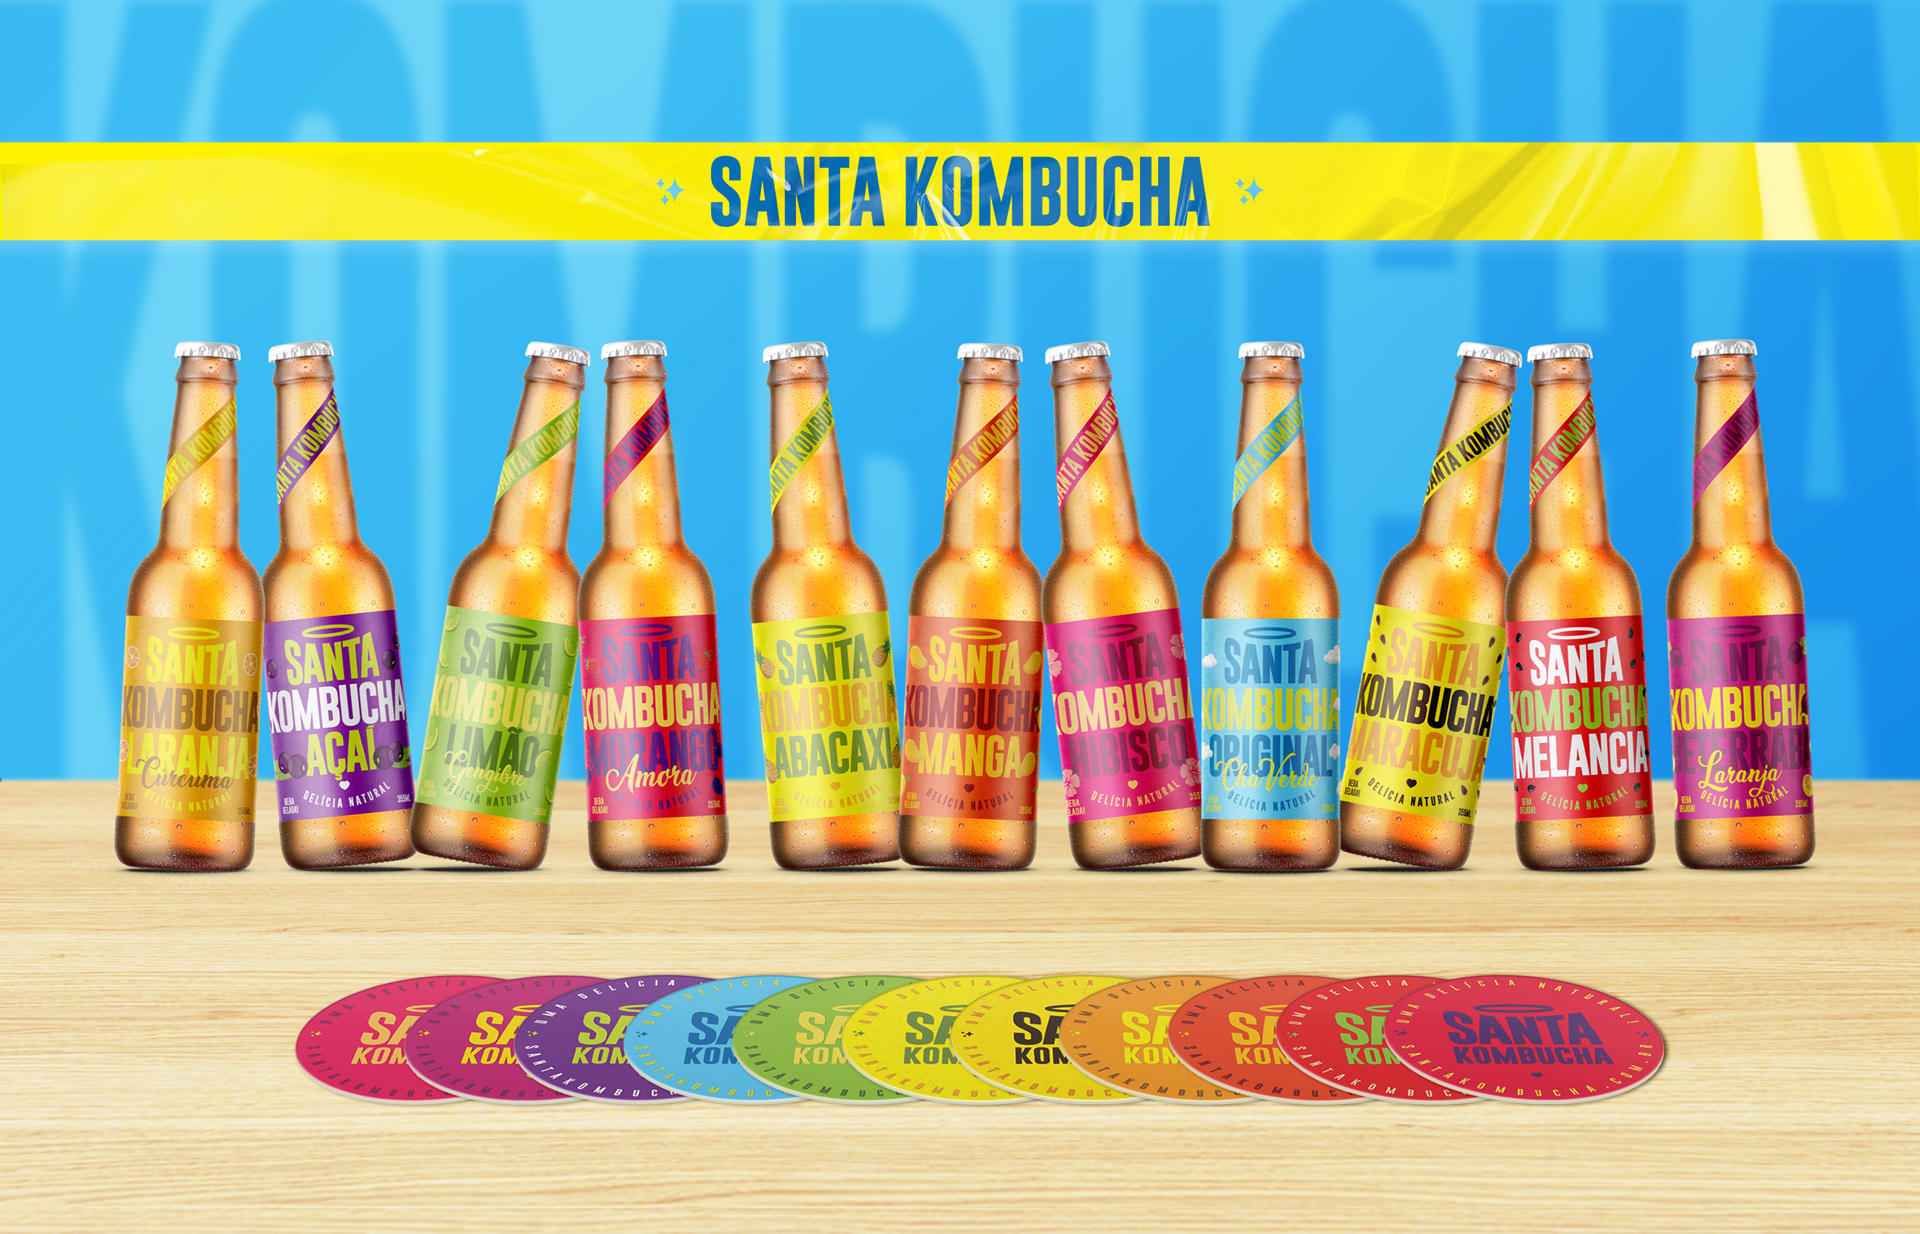 Industria Branding Creates New Packaging Design for Santa Kombucha